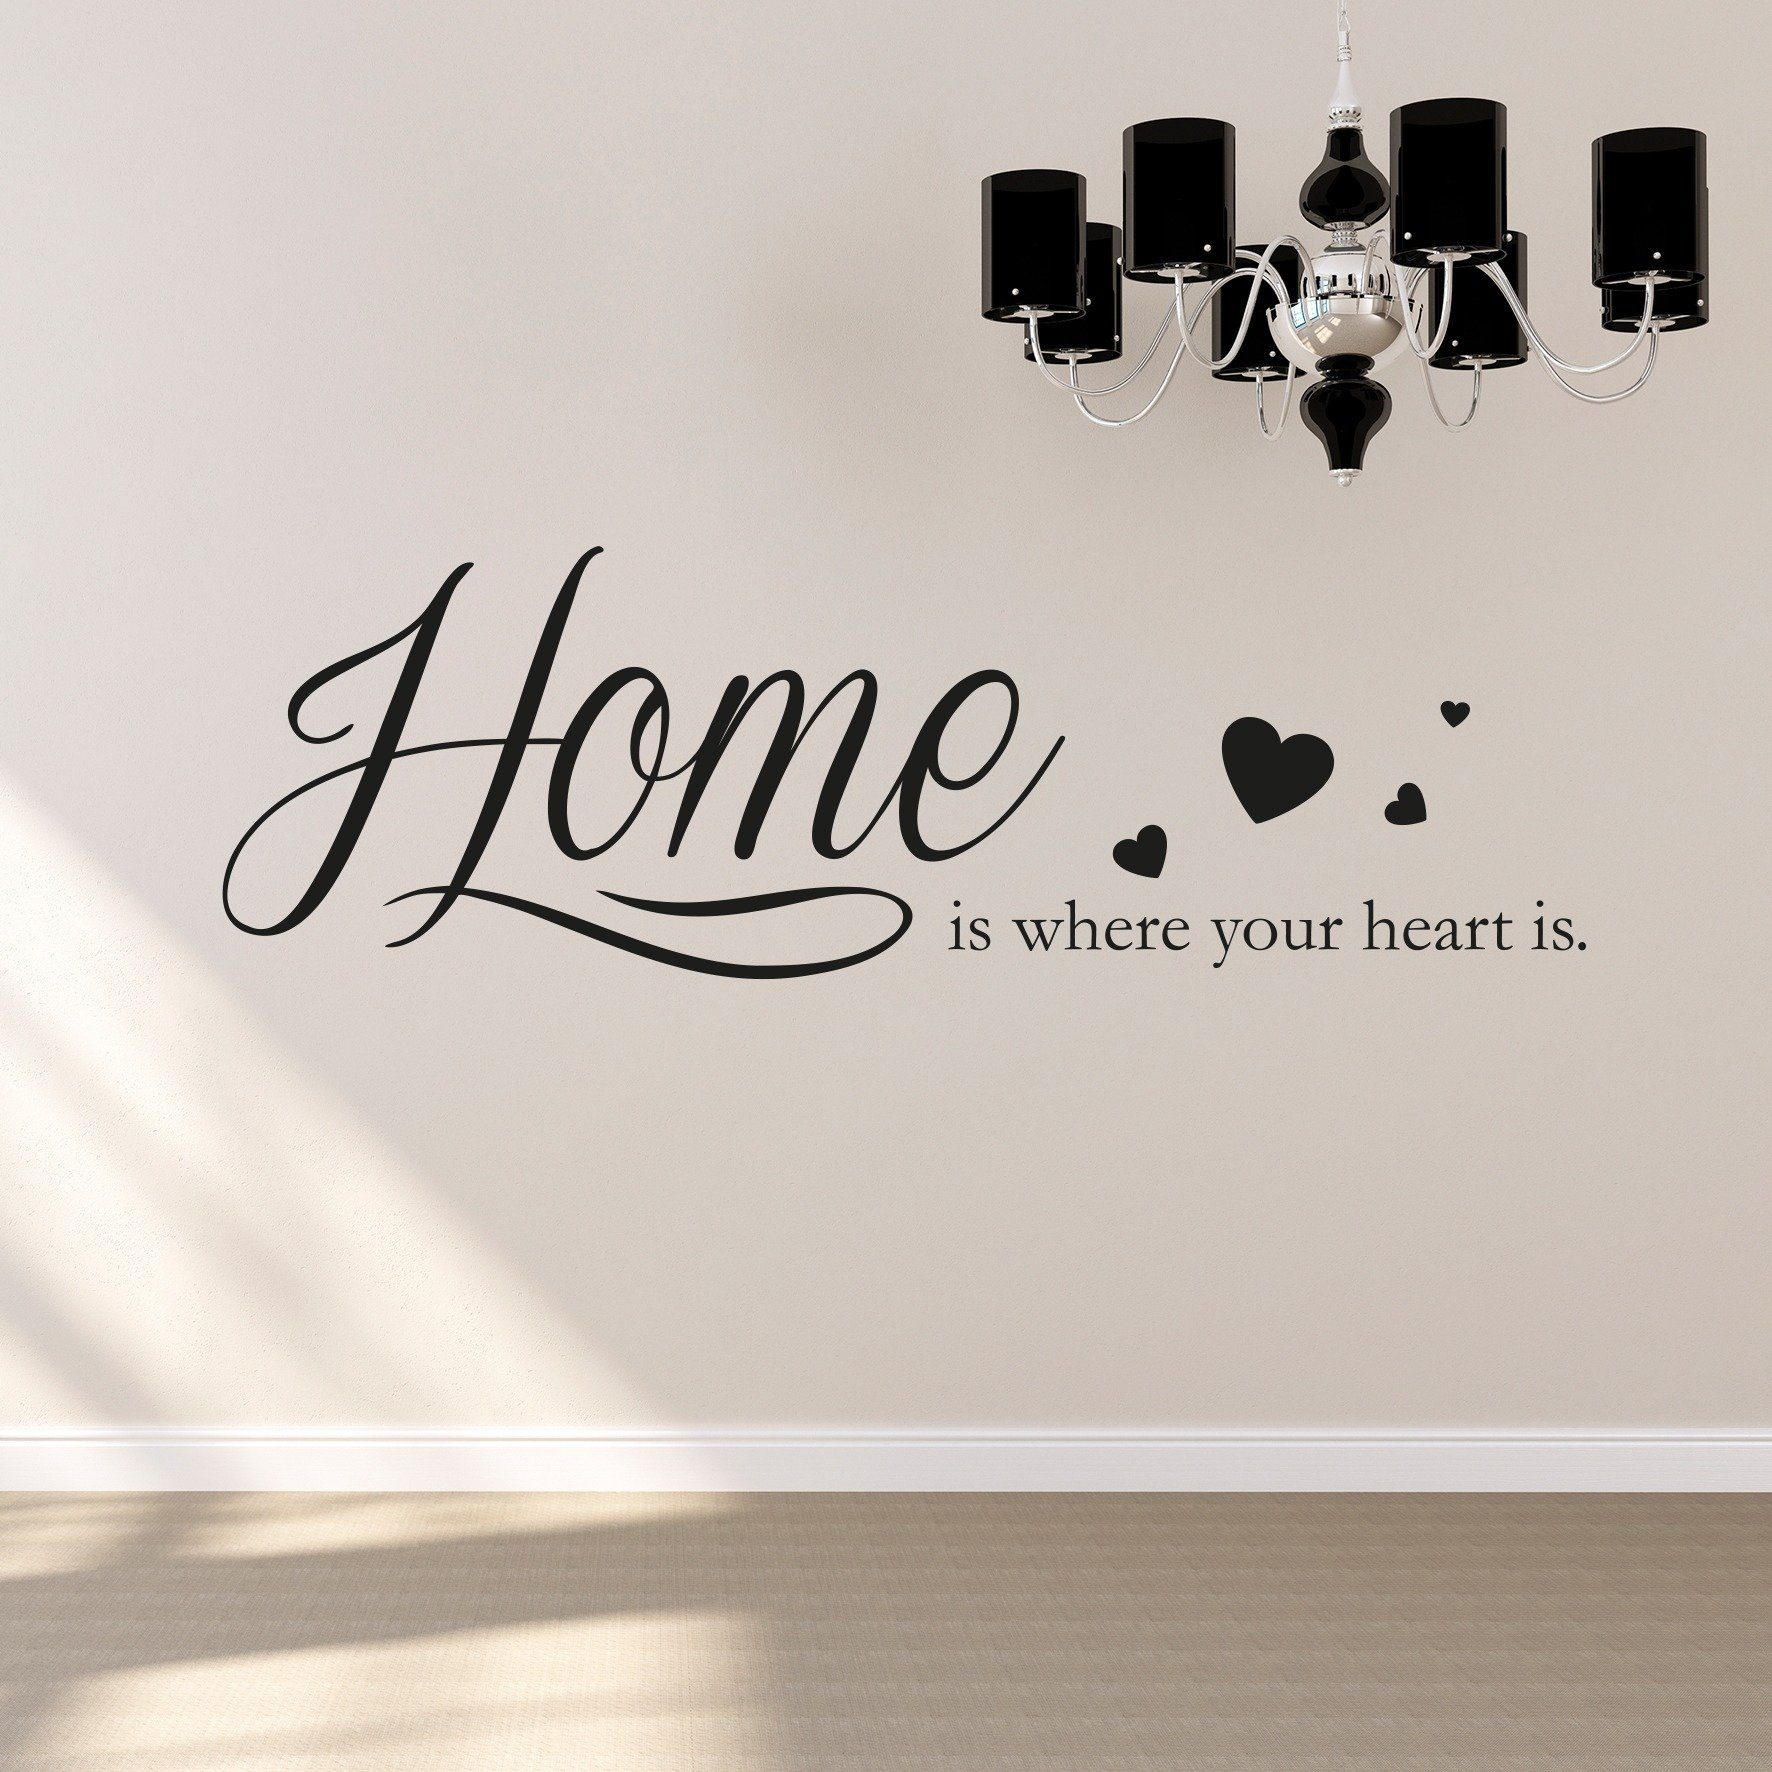 Wandtattoo Schriftzug Queence Wandtattoo Home Is Where Your Heart Is 120 X 30 Cm Online Kaufen Otto